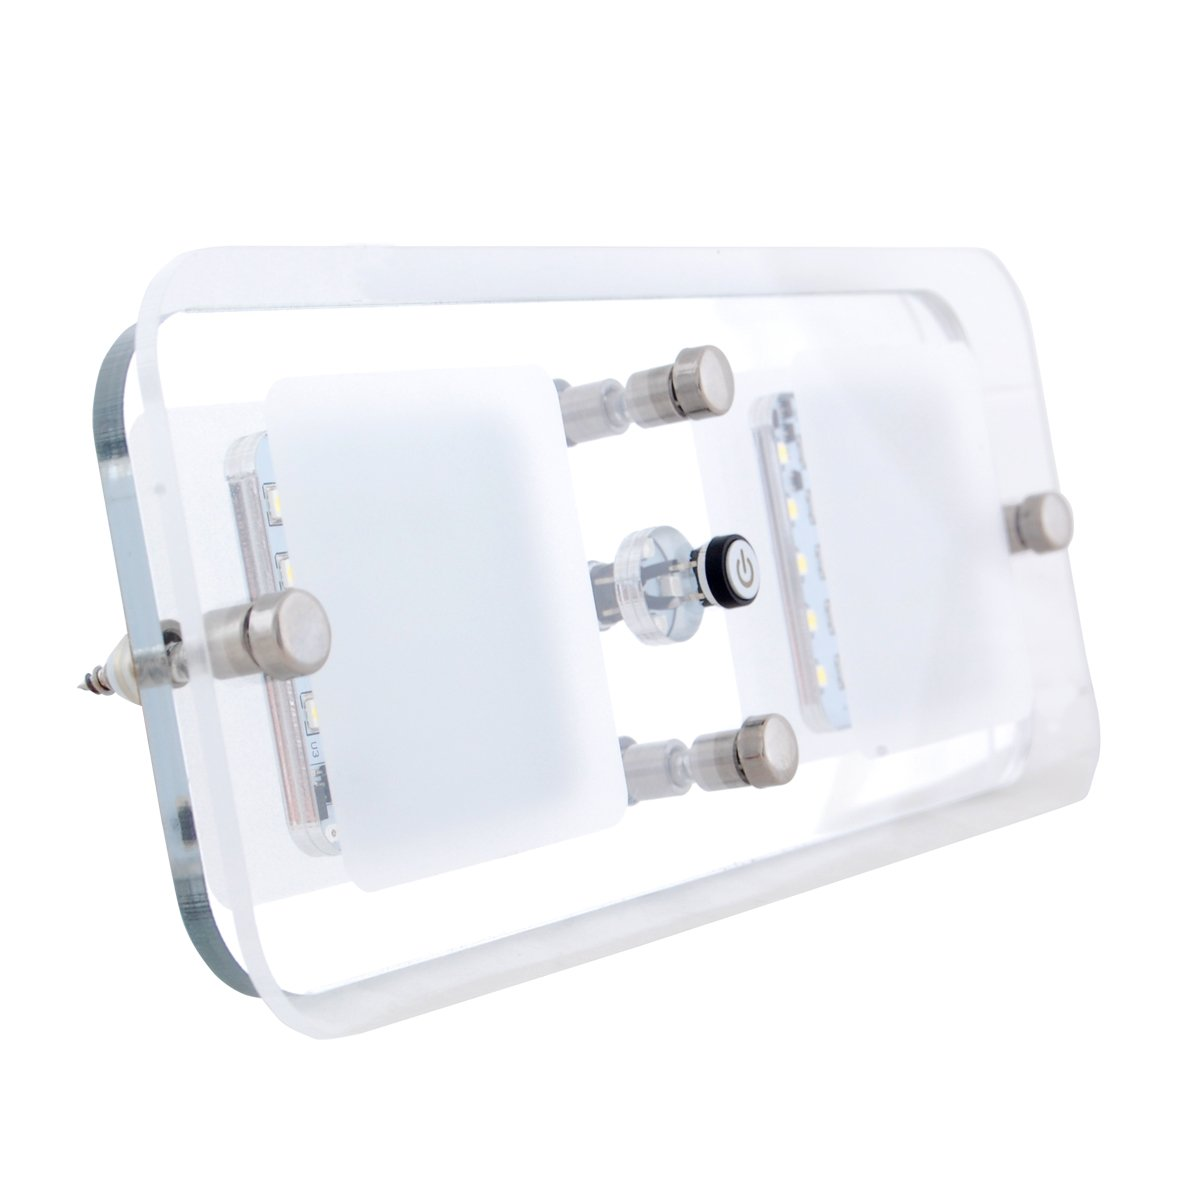 Dream Lighting LED Ceiling Lights Interior Lamps for Caravan Motorhome Boat Acrylic Lamp Lens On/off Switch Jiangmen city Jerrylight LTD C.O.